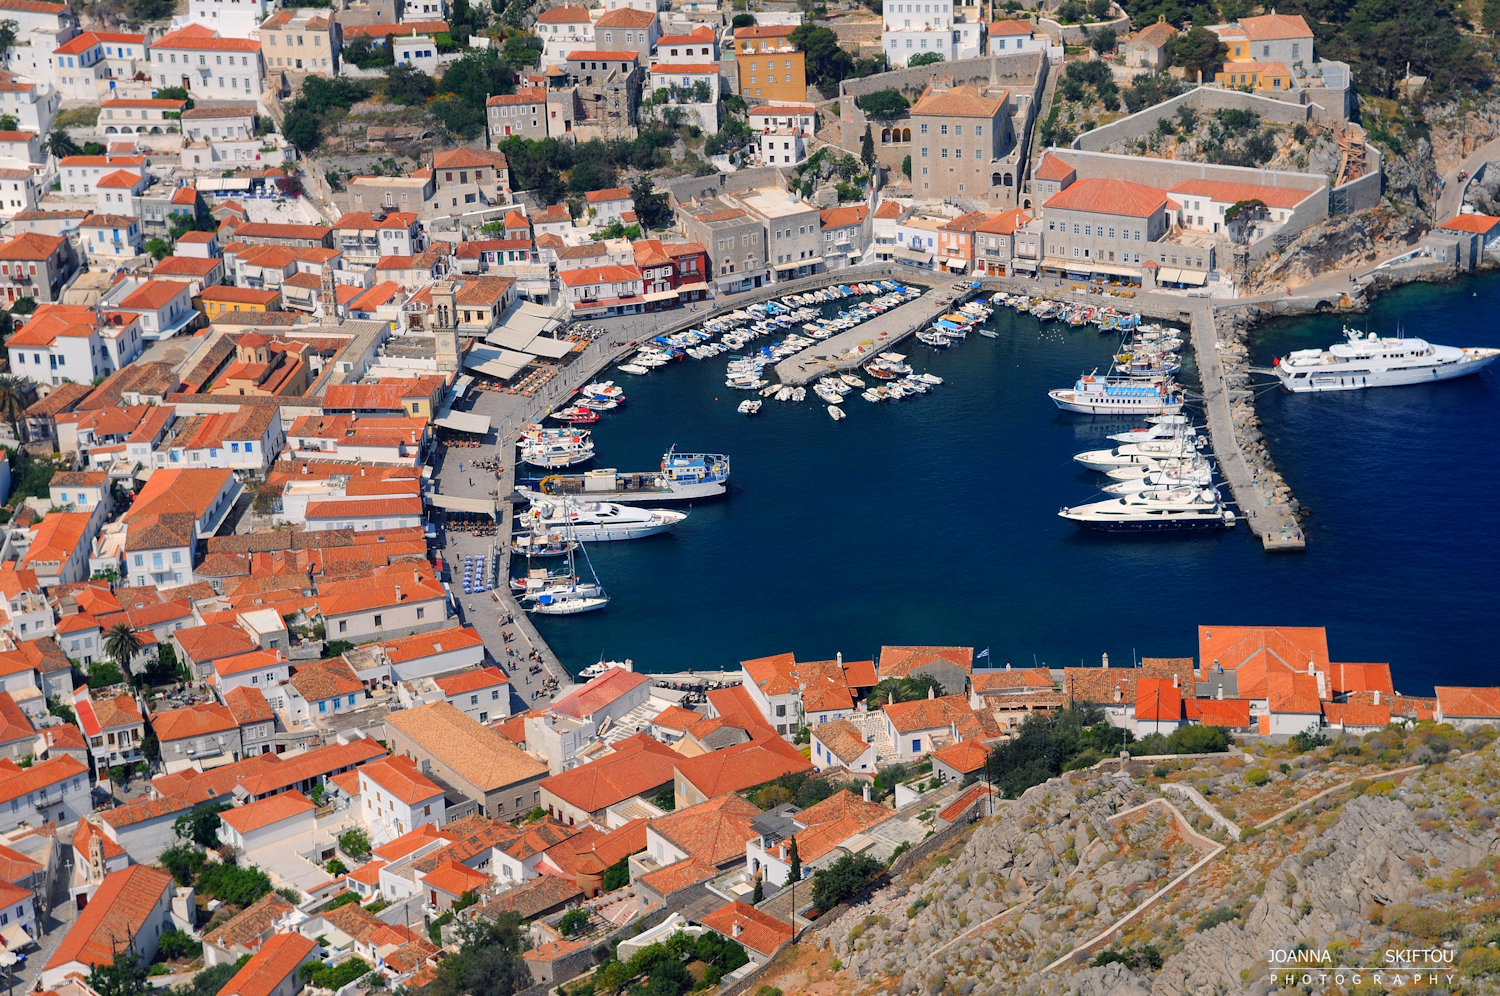 Aerial  photography by Joanna Skiftou, Hydra, Greece